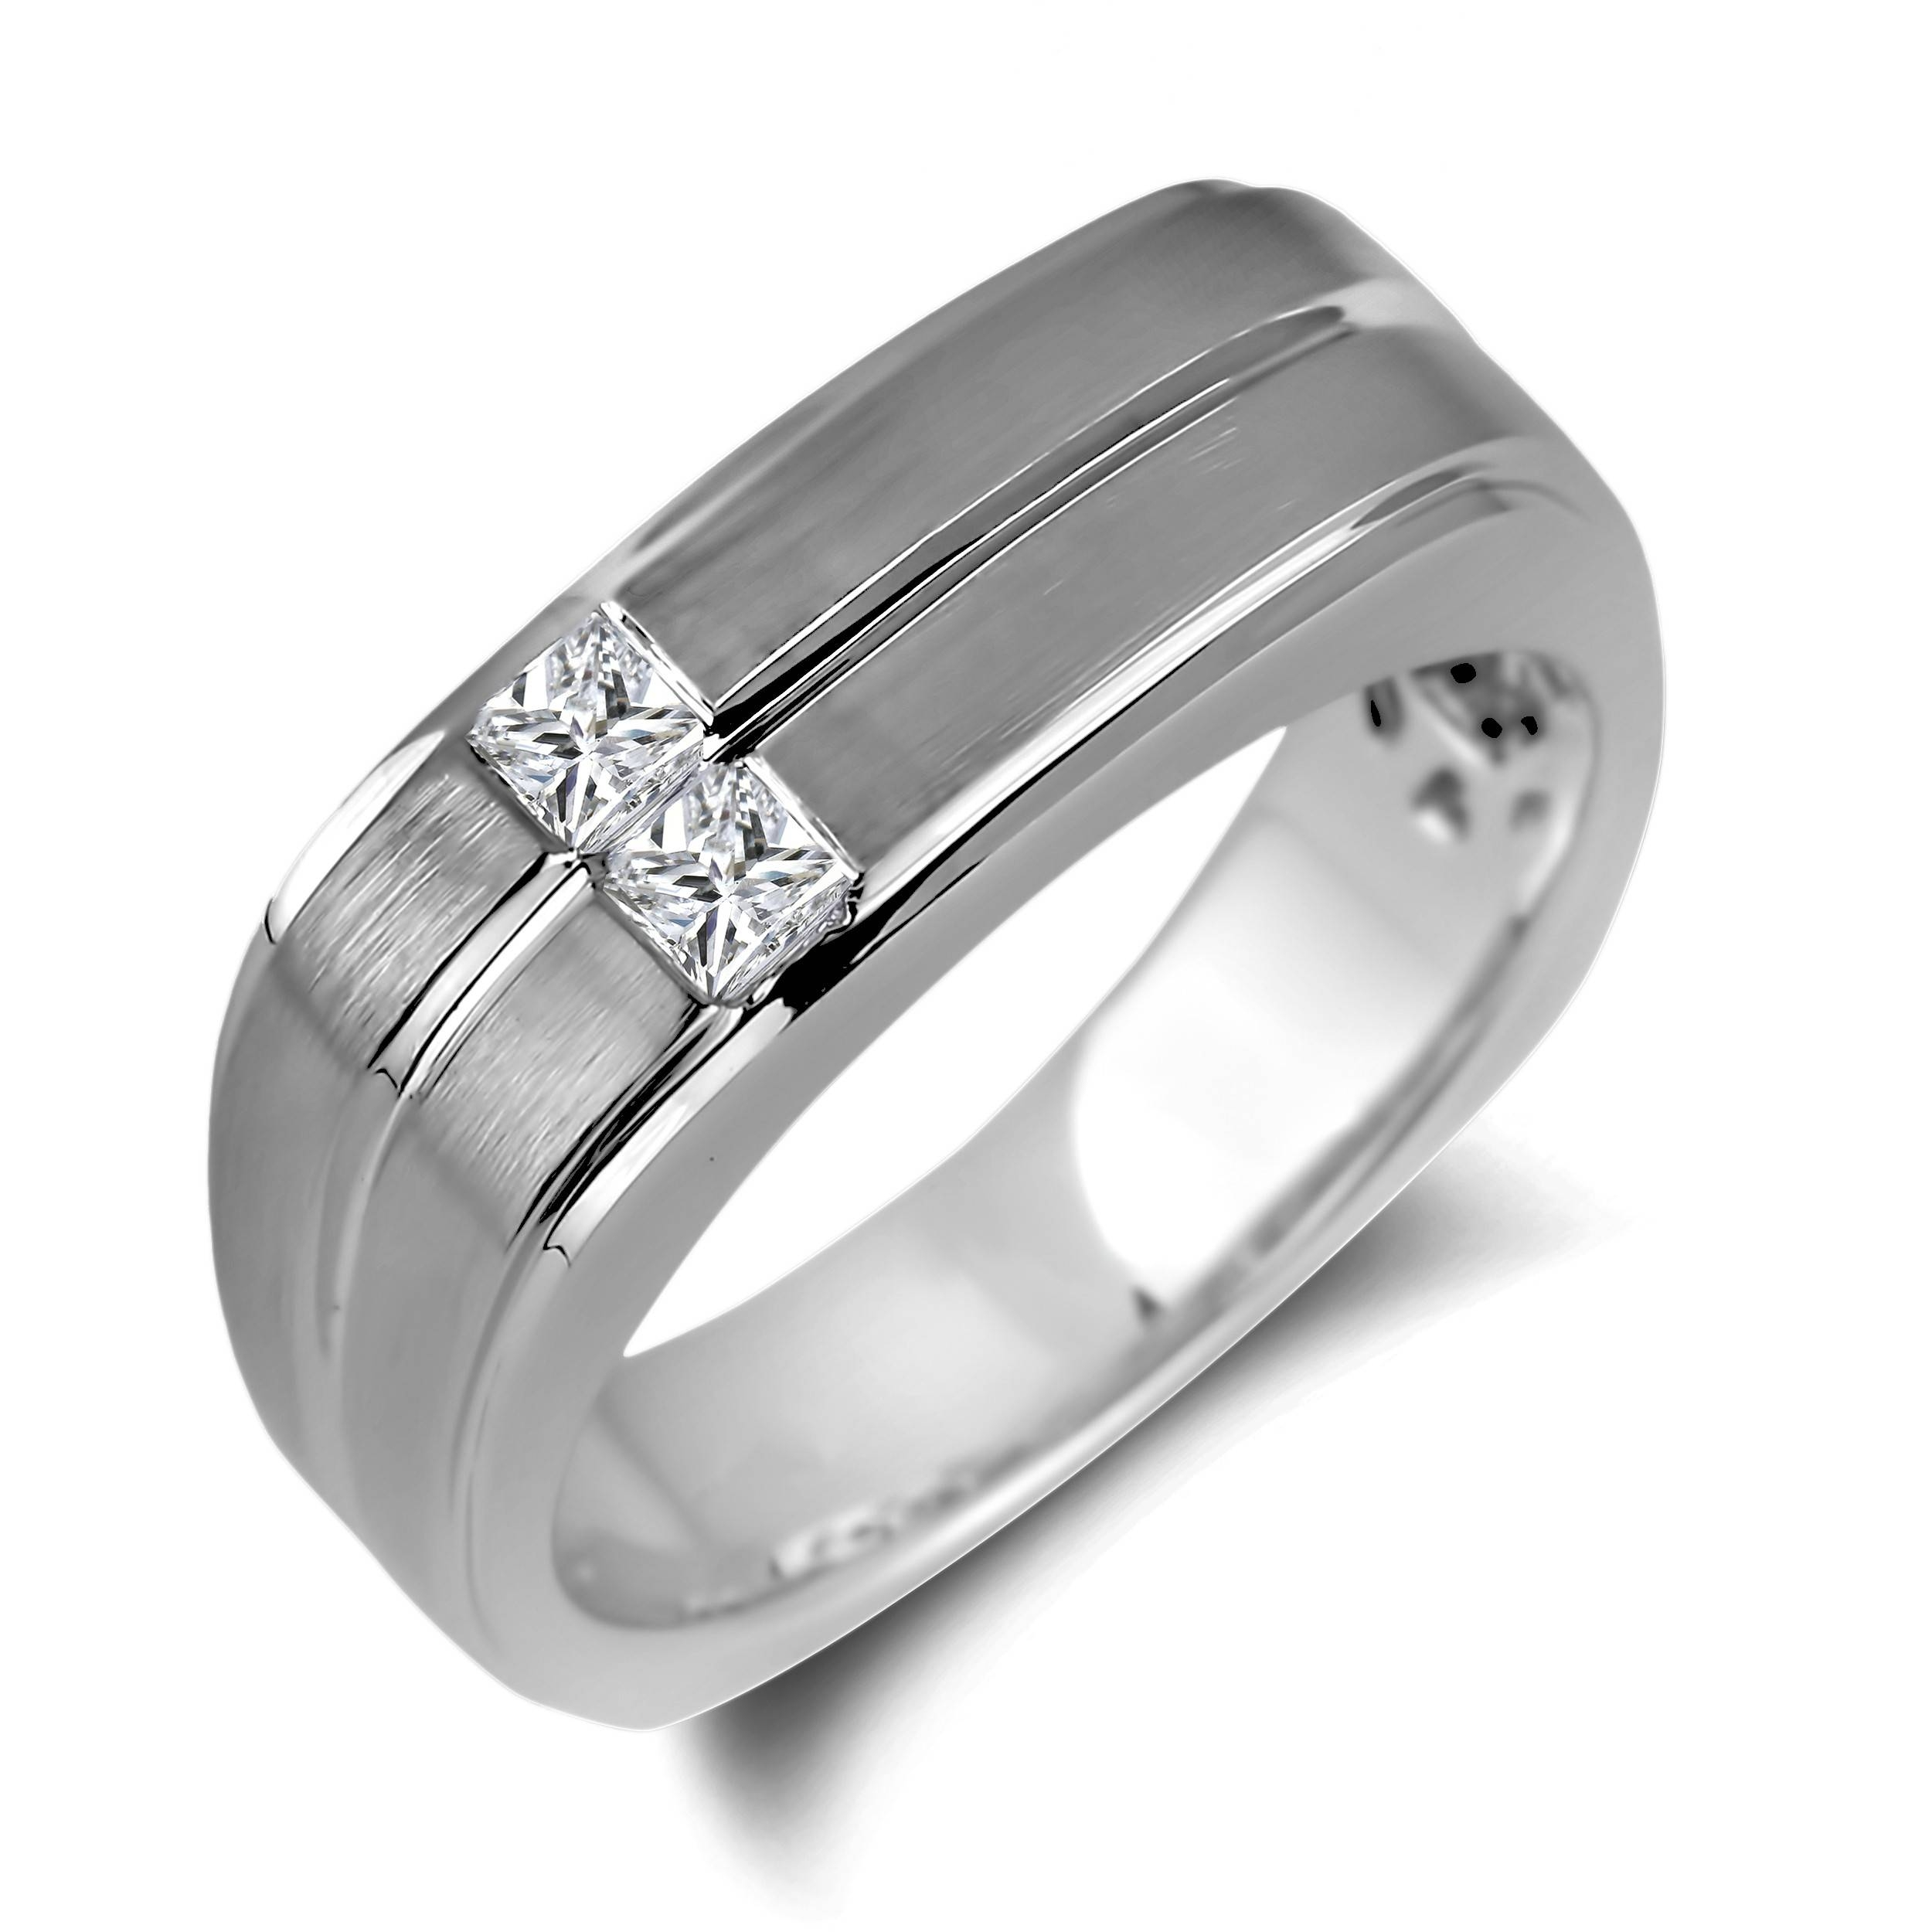 choose com walmart ring matching him silver hers sterling and rings set his her ip trio bands sizes for groom wedding titanium